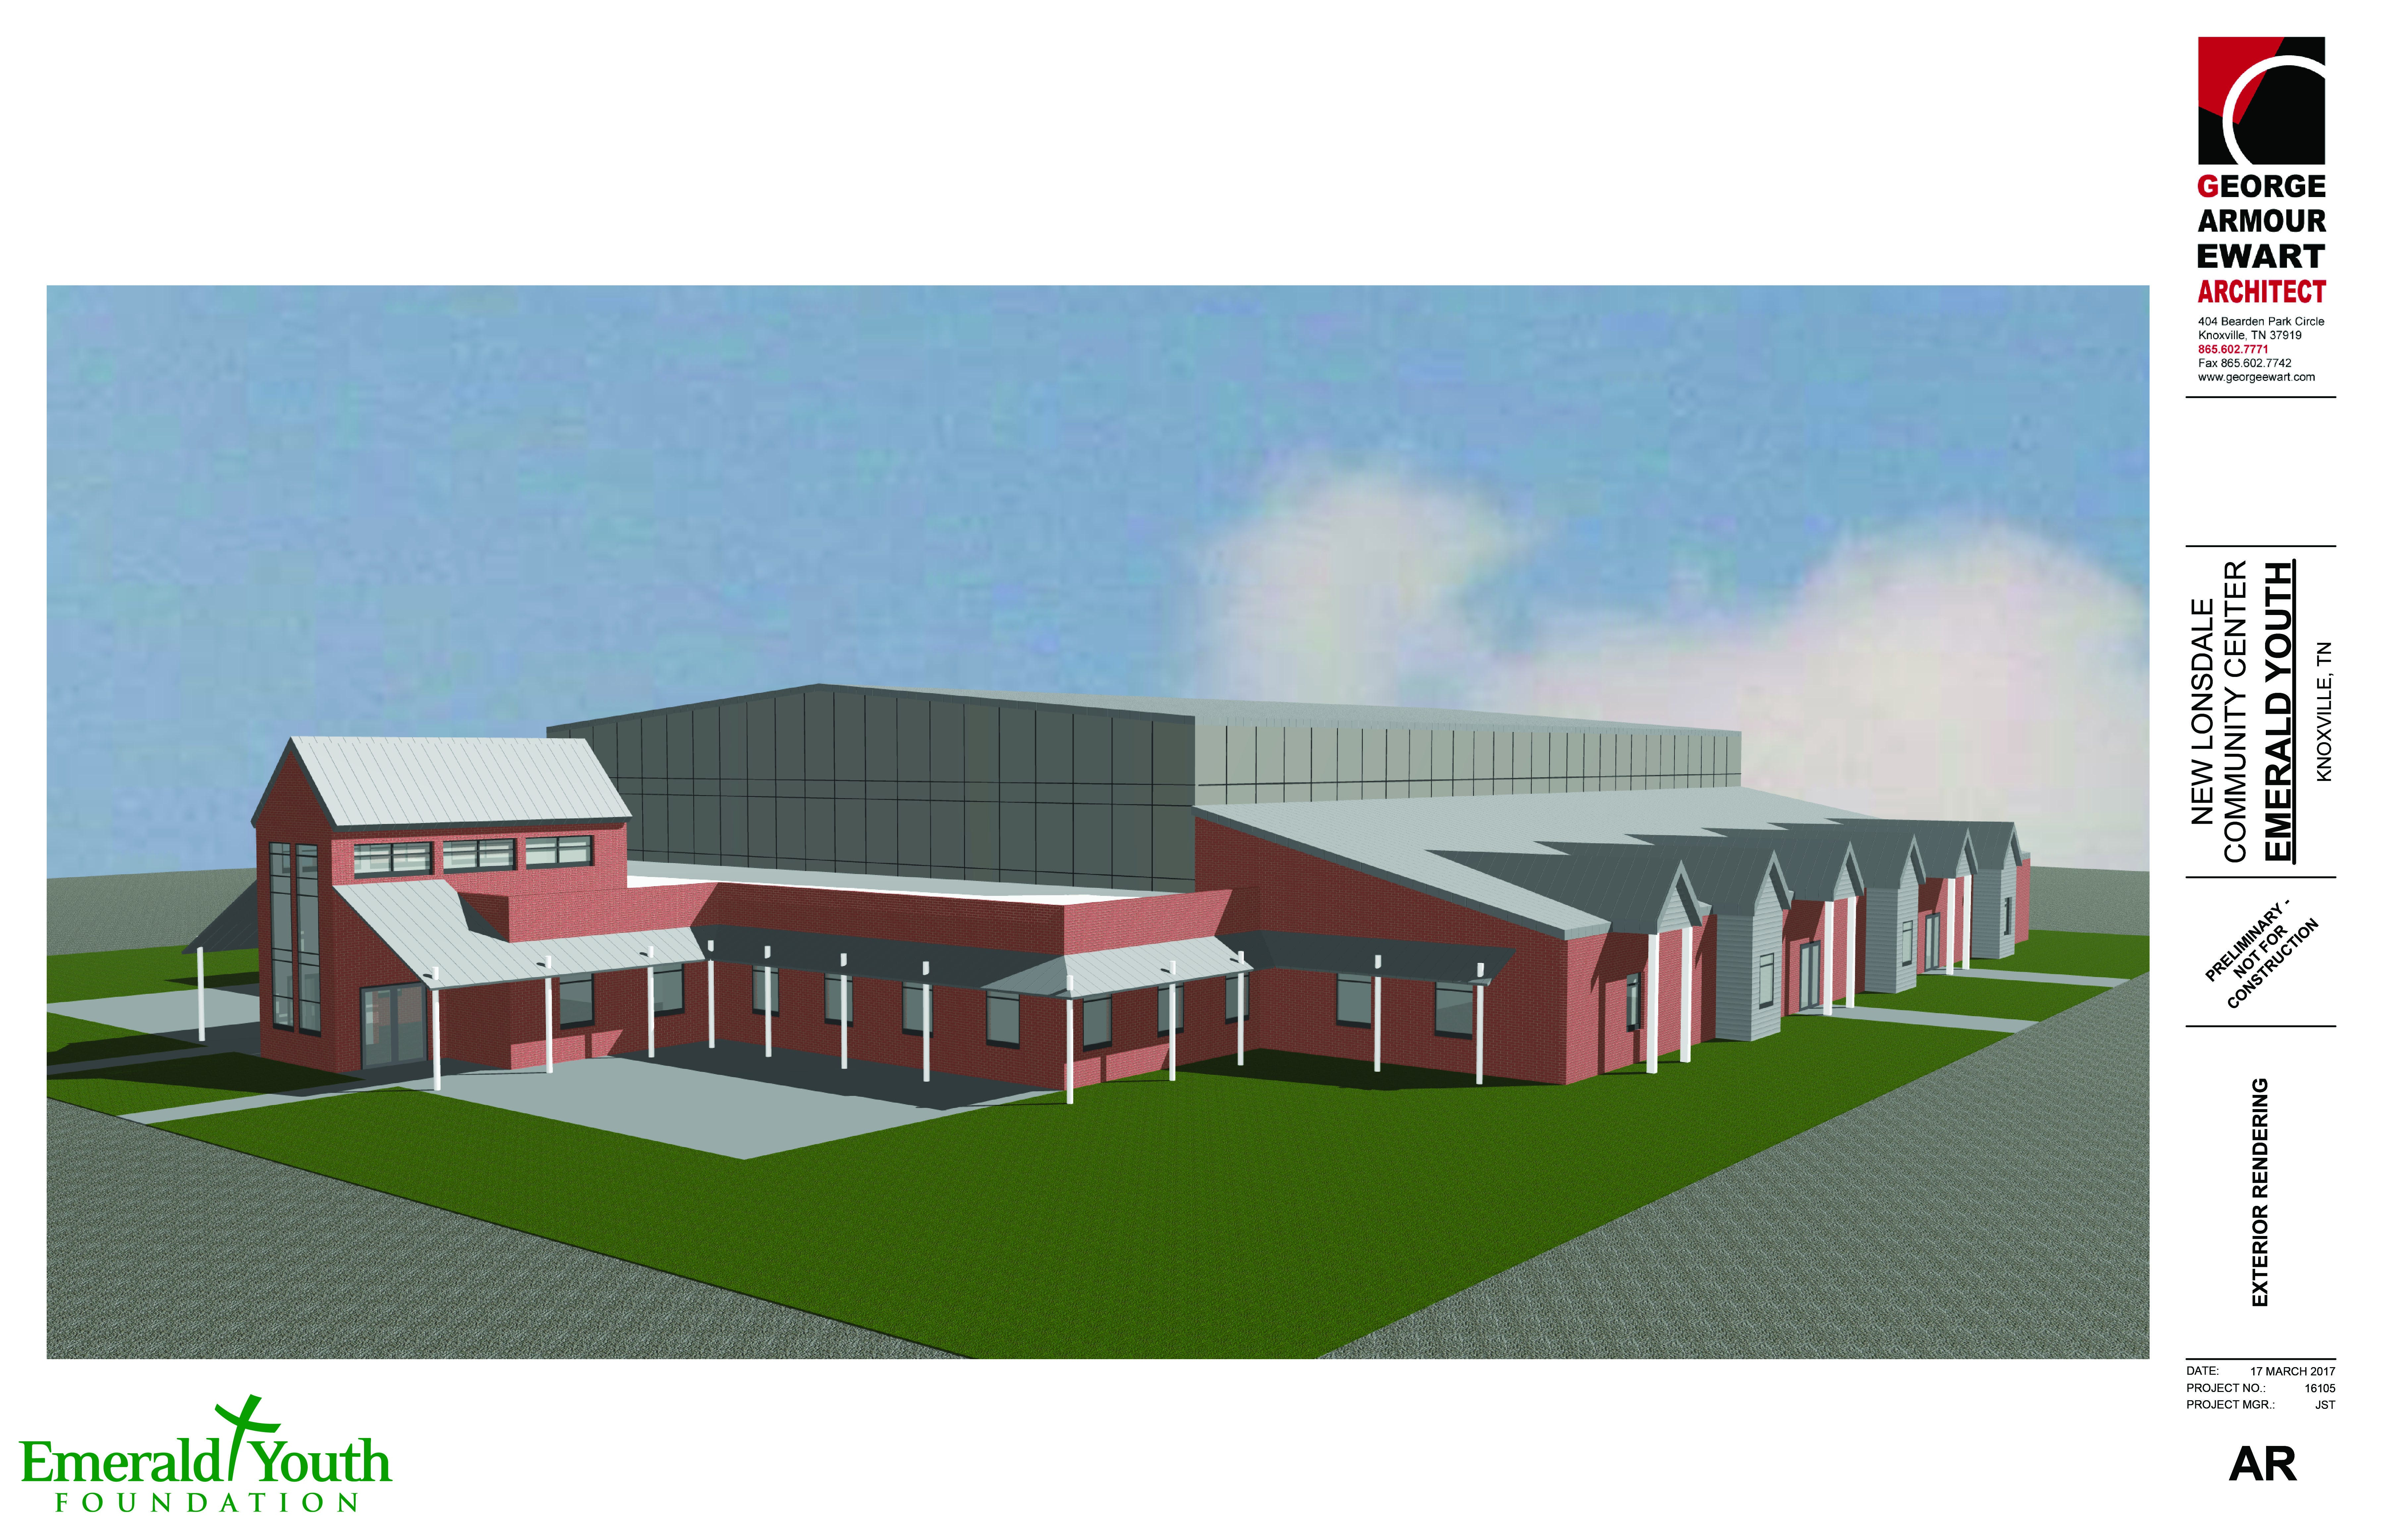 10m sports complex community center proposed in lonsdale rh knoxnews com